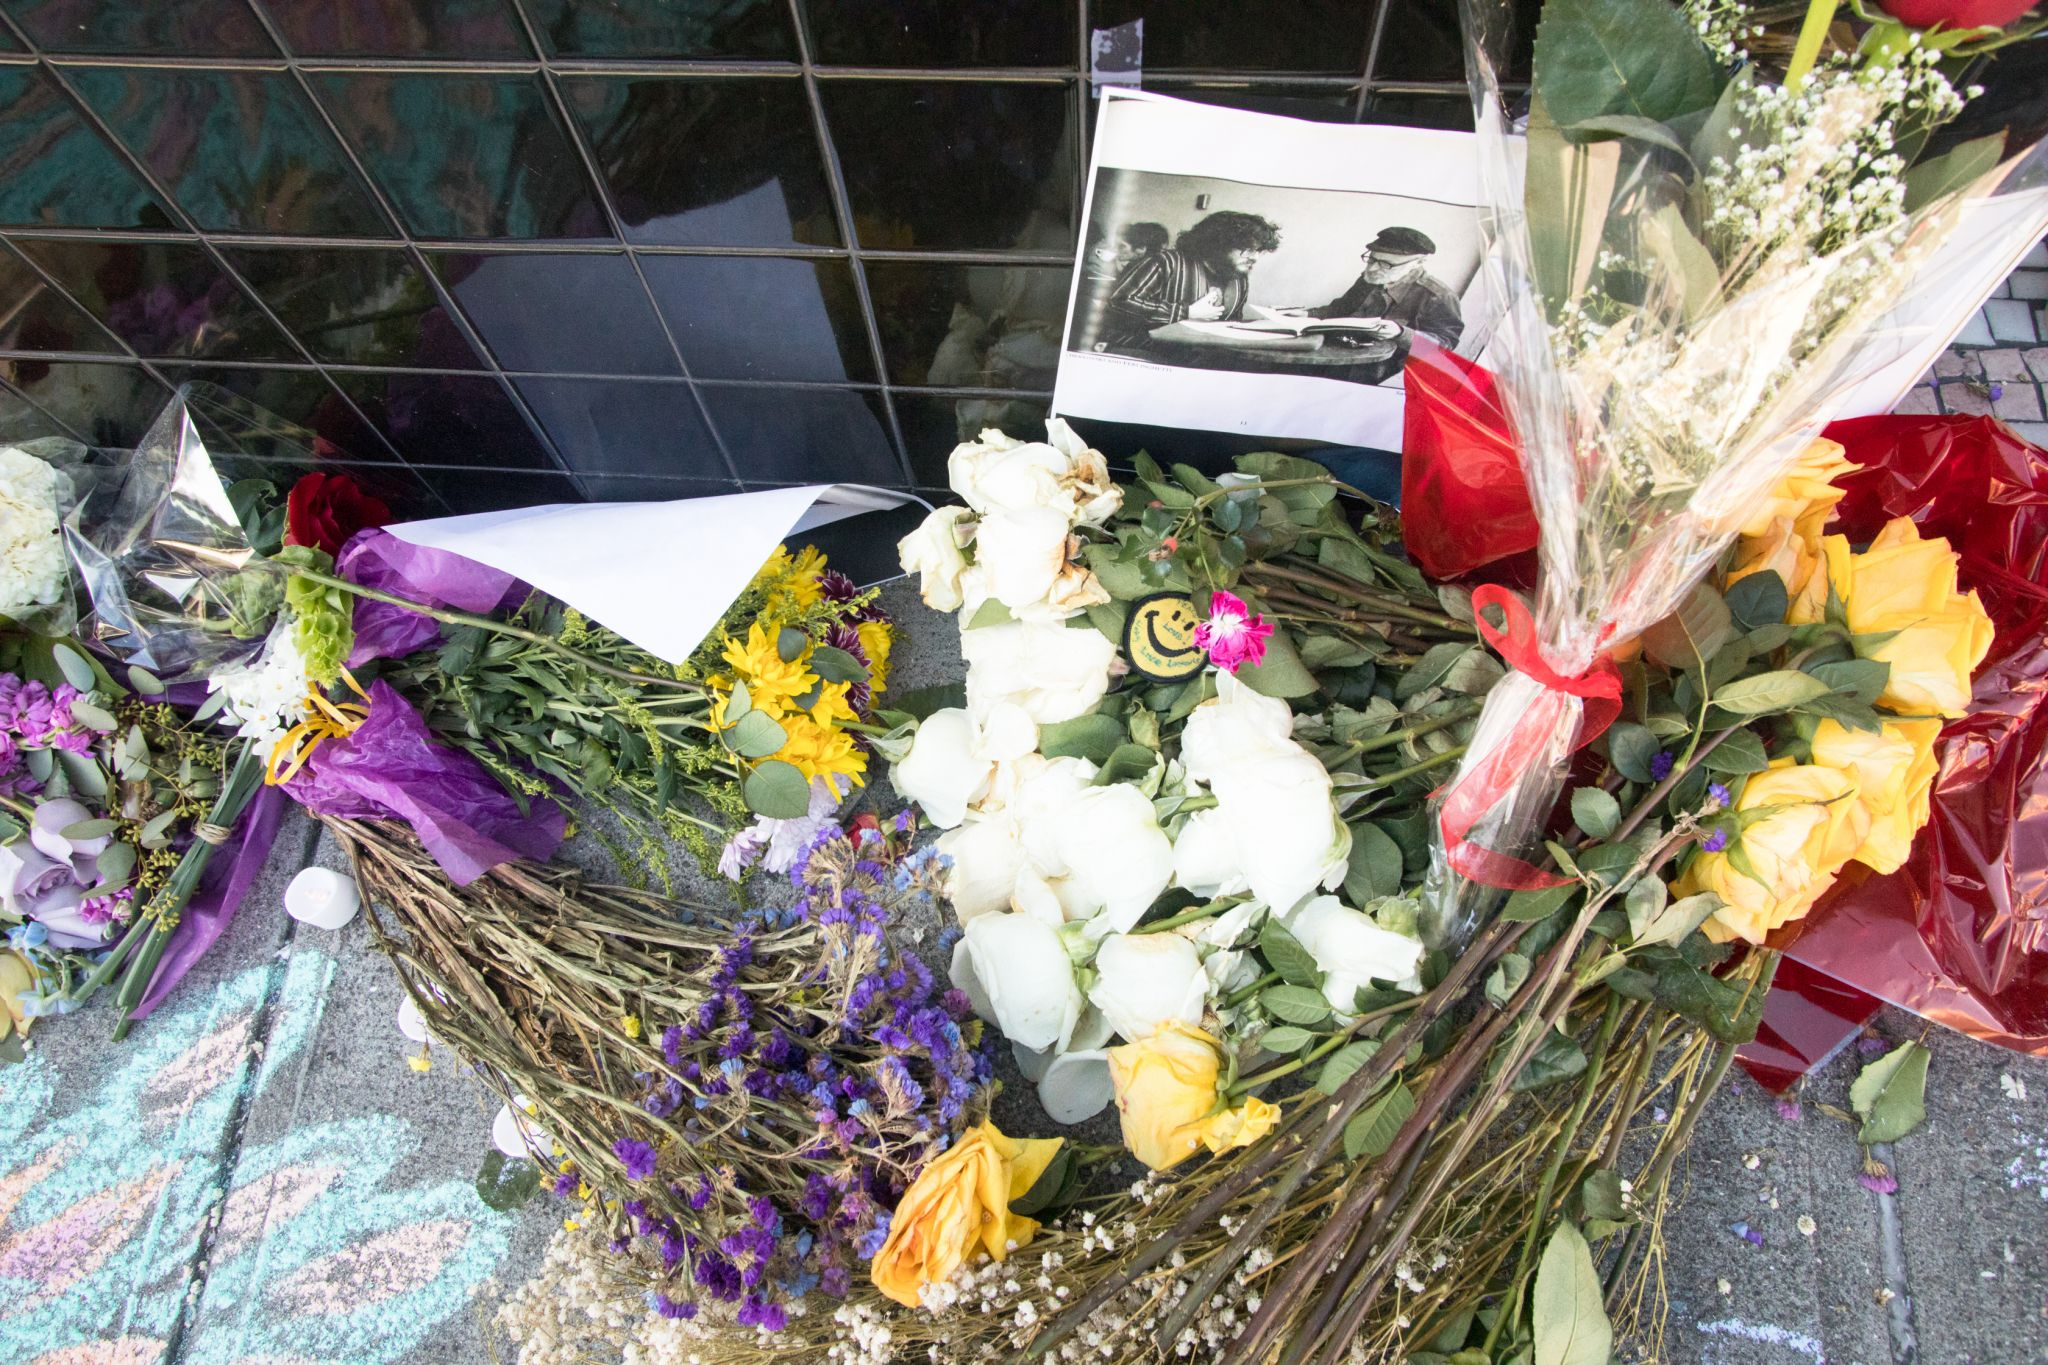 An impromptu memorial in honor of Lawrence Ferlinghetti appeared overnight in front of the City Lights bookstore in San Francisco on Feb. 24, 2021.